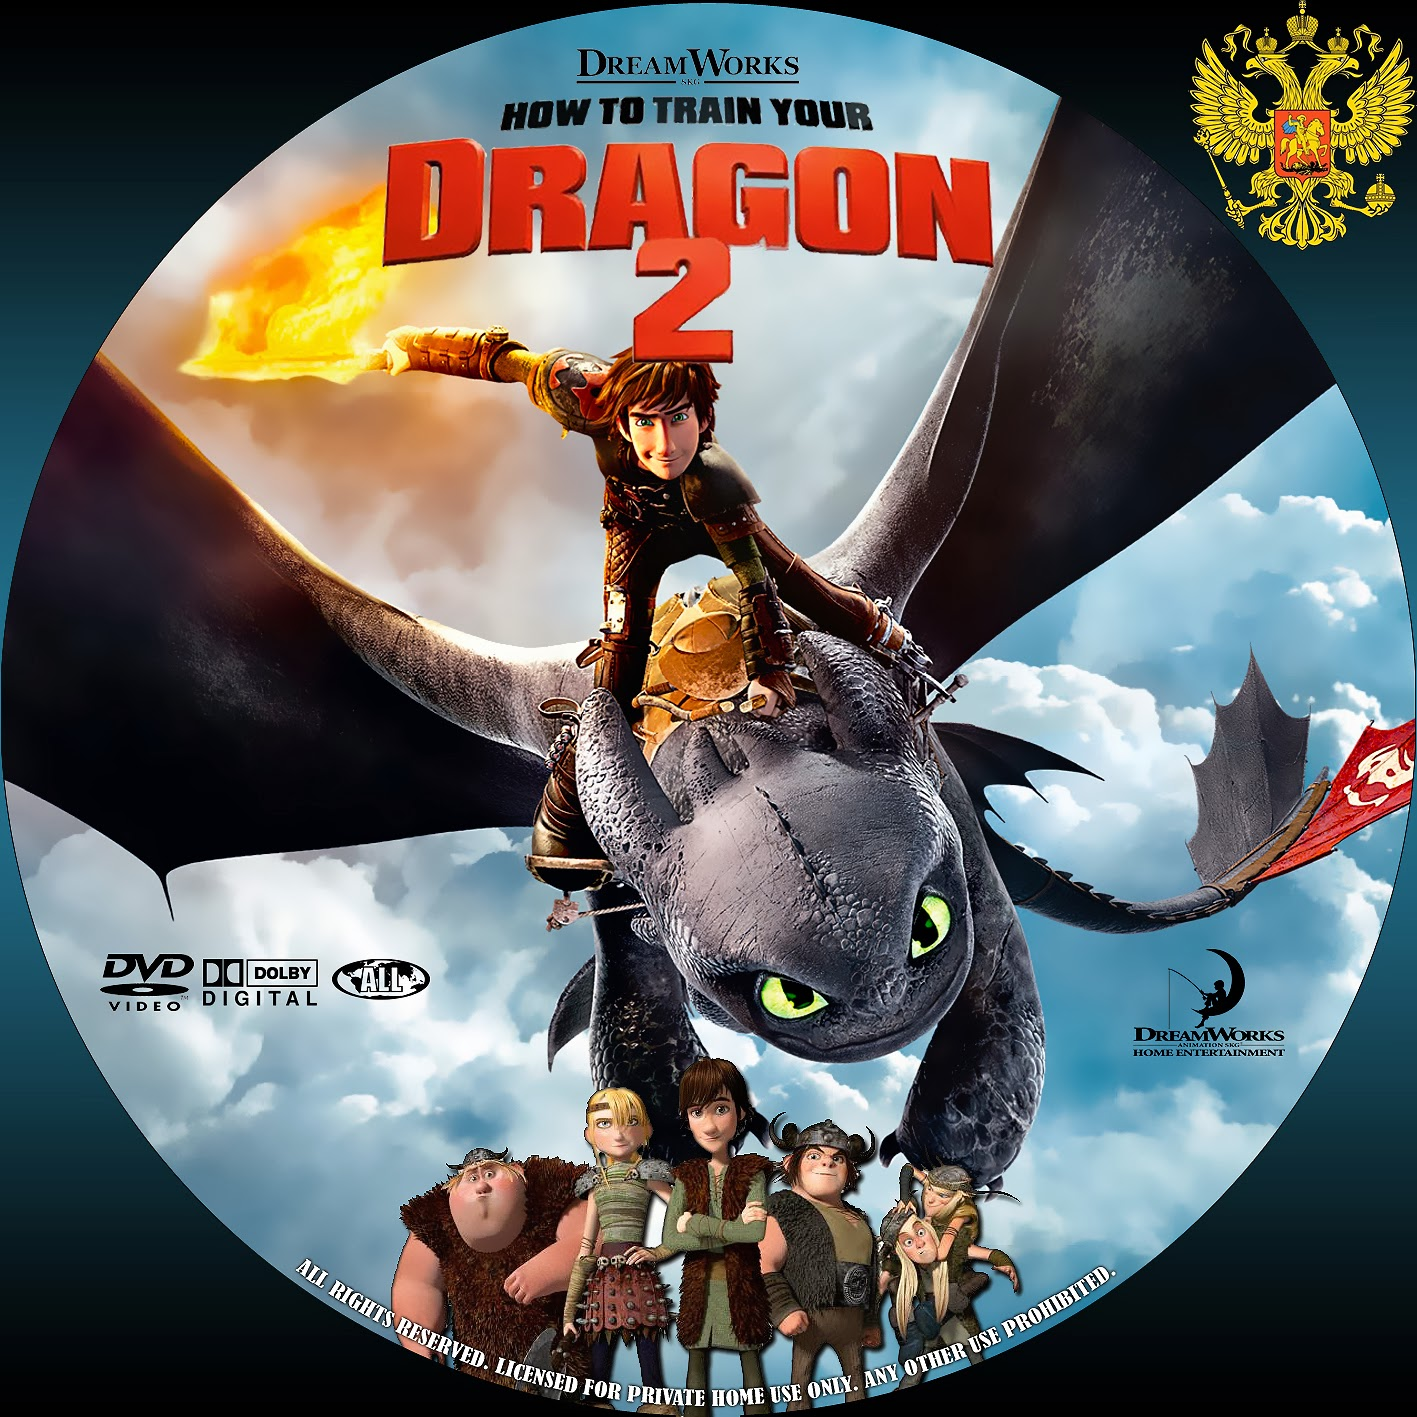 how to train your dragon full series dvd set